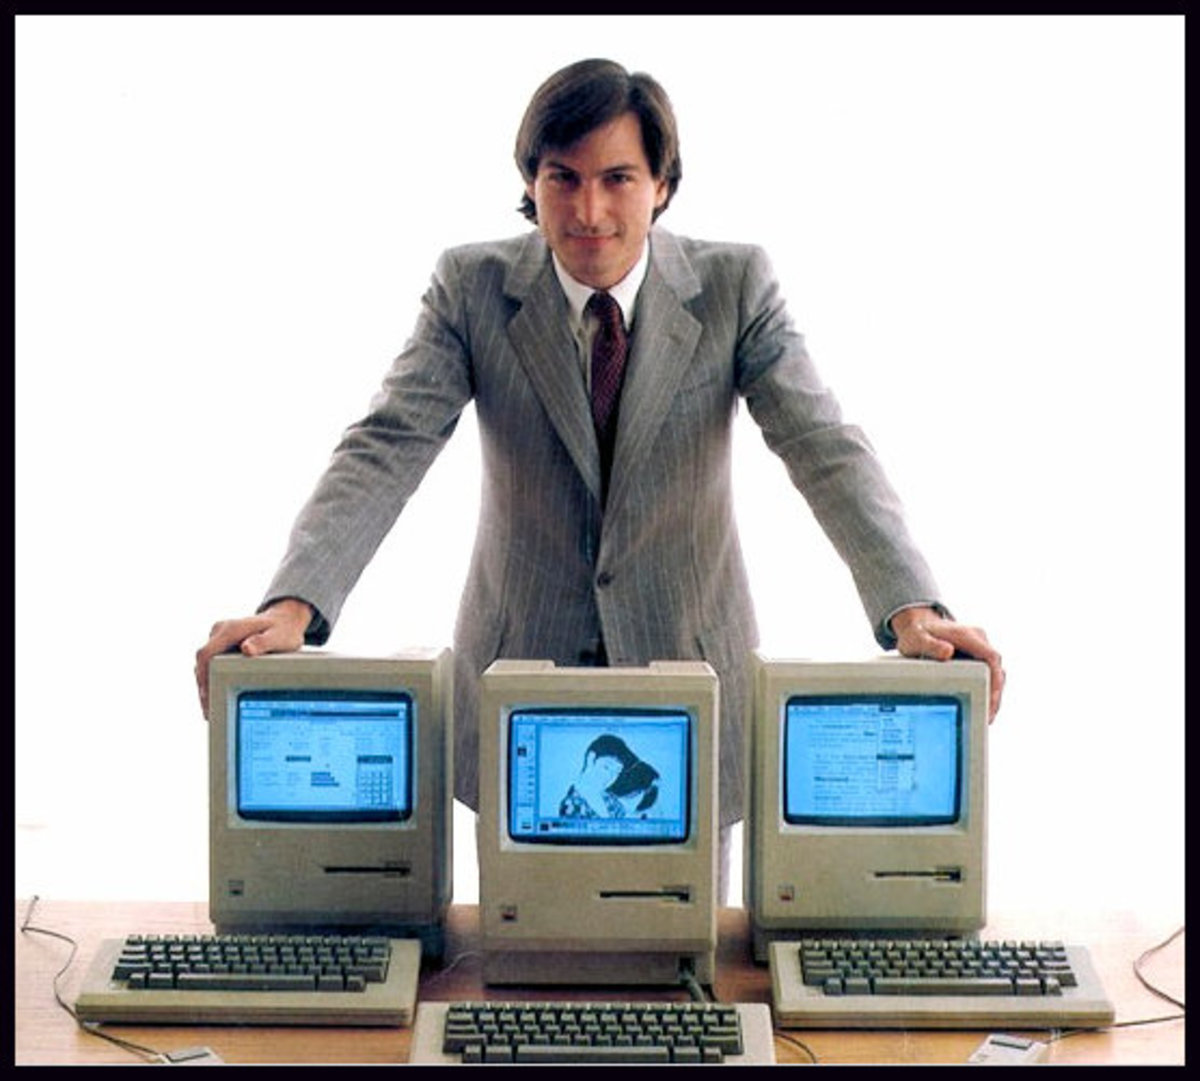 Steve Jobs with Macintosh in 1984. The Mac had a high price tag and low sales.